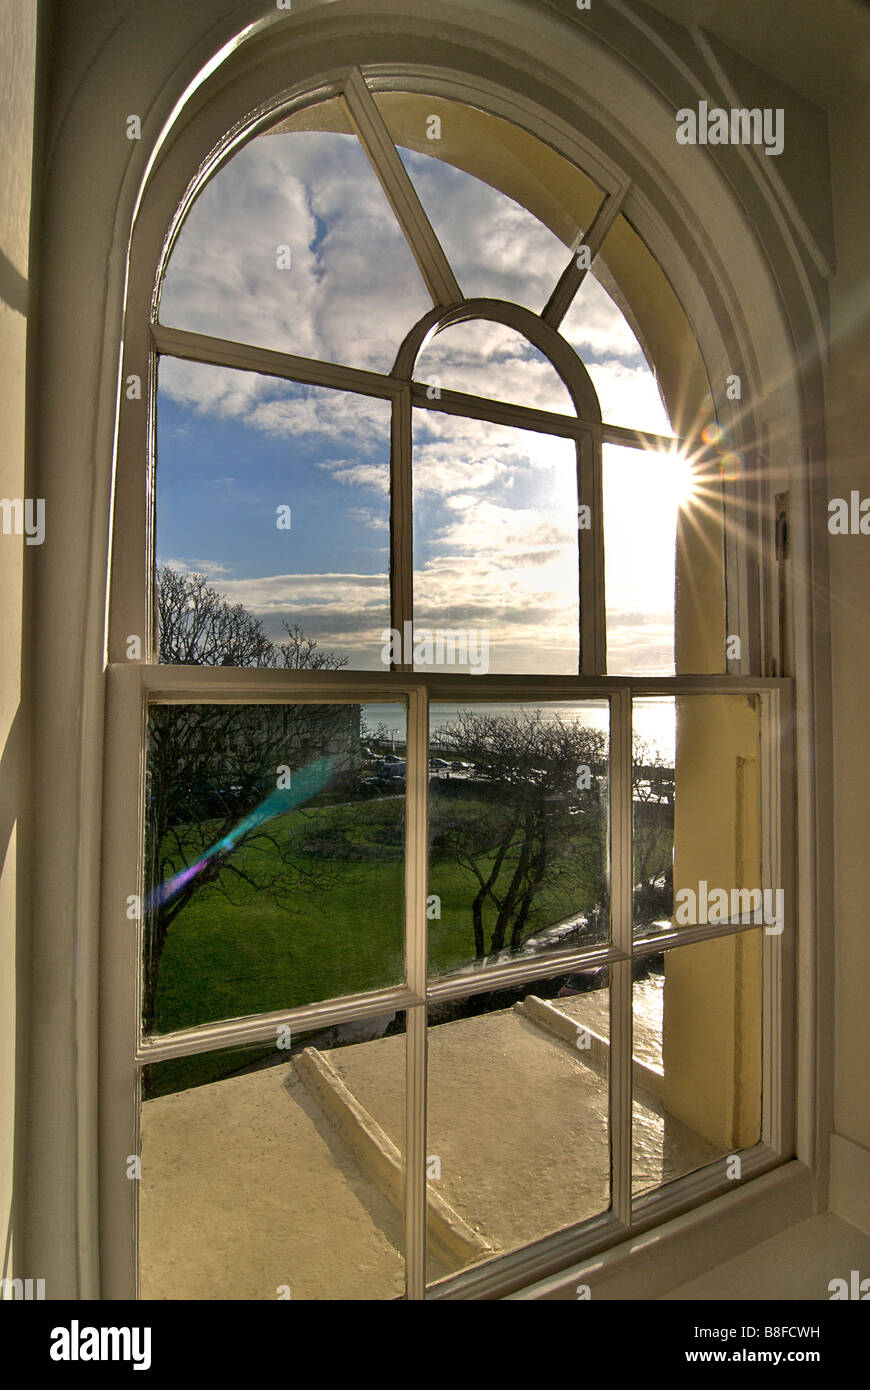 Interior. Looking out of an arched window towards the sea. Regency architecture Brunswick Square, Hove, East Sussex, - Stock Image